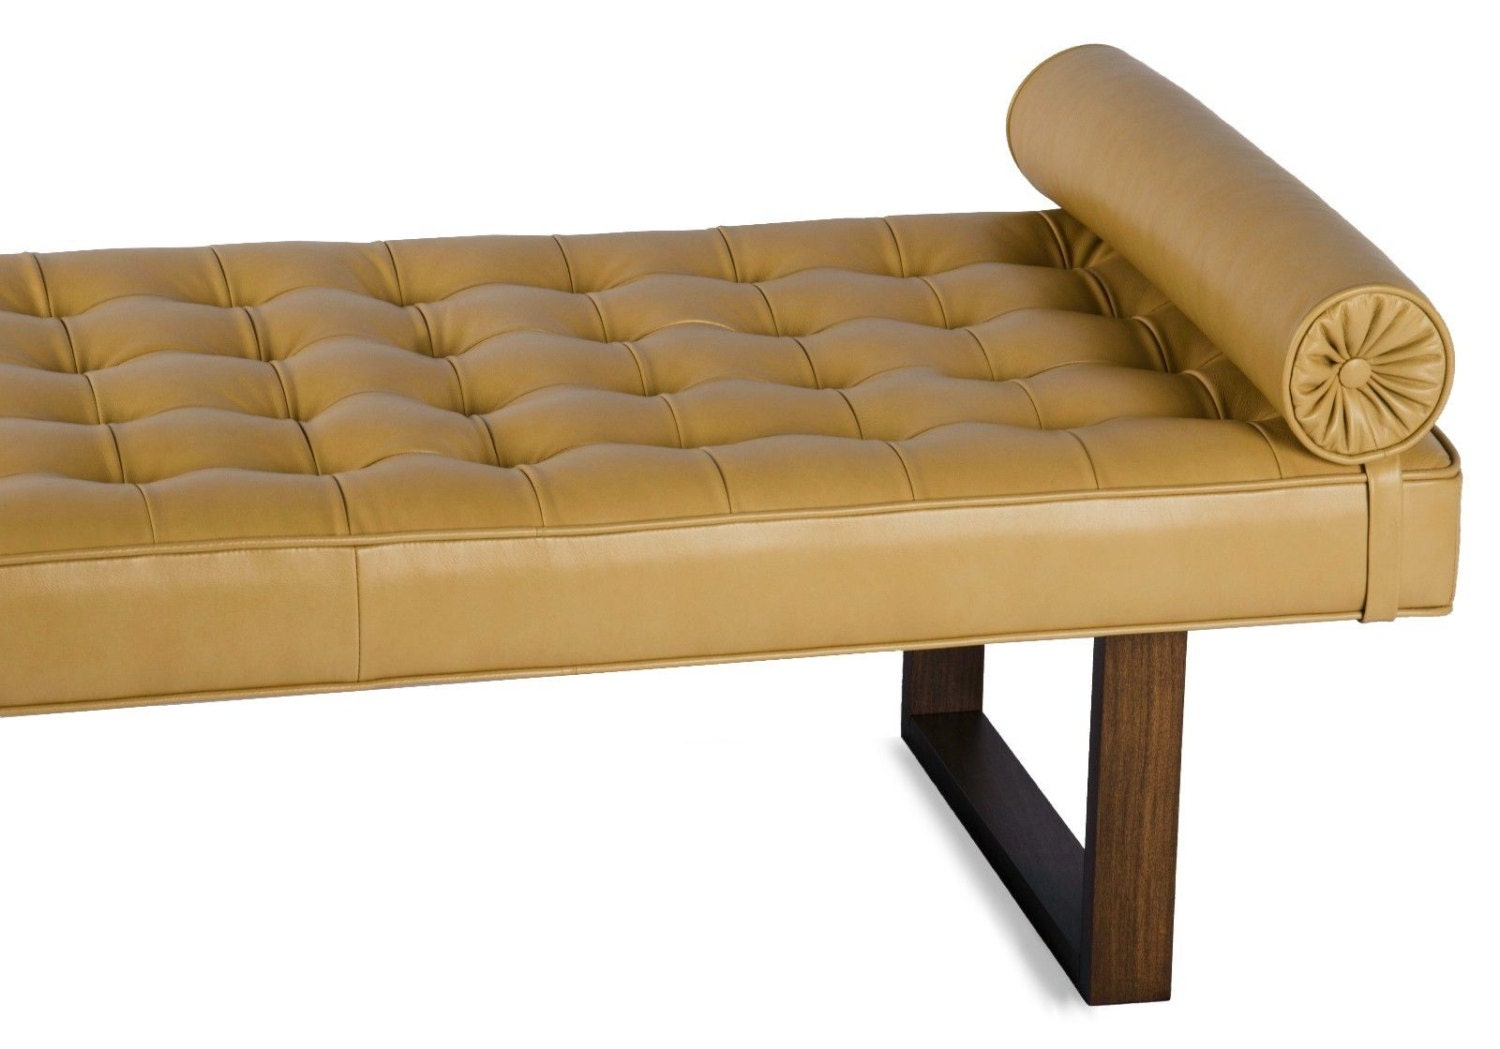 Retro modern tufted leather daybed lounge chaise bench Daybed bench